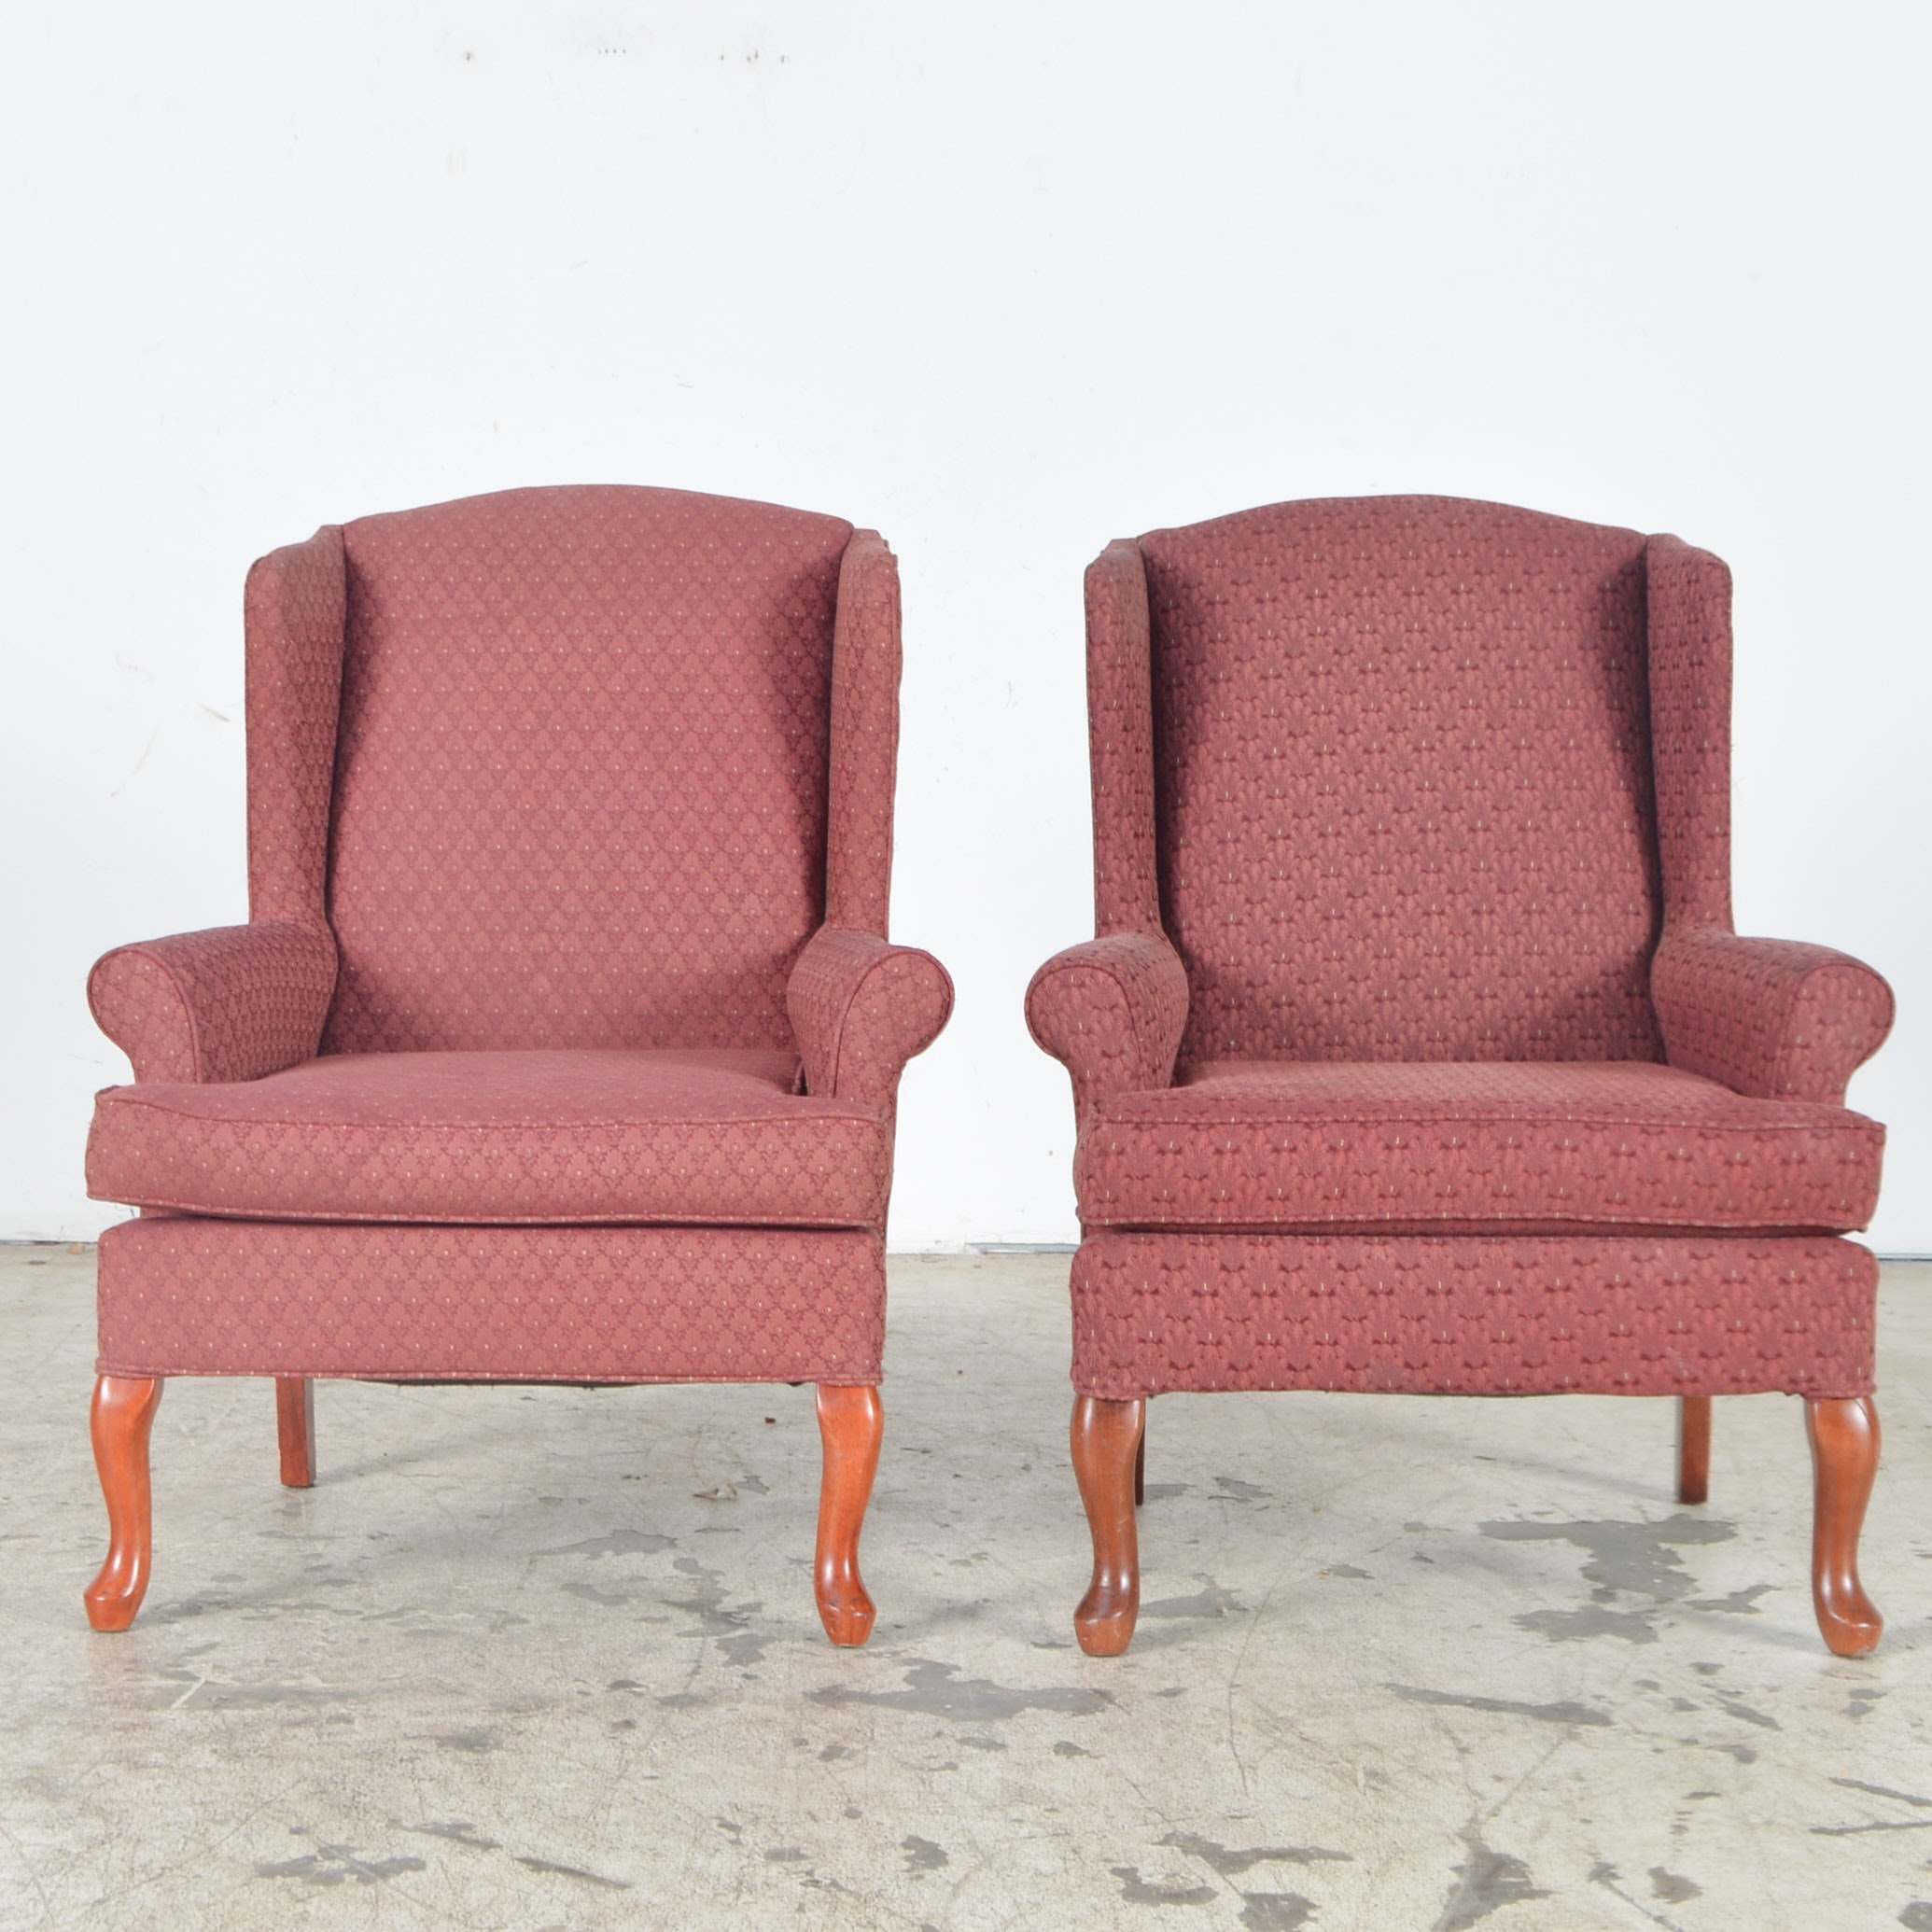 Burgundy Upholstered Wingback Chairs By Best Chairs, Inc. ...